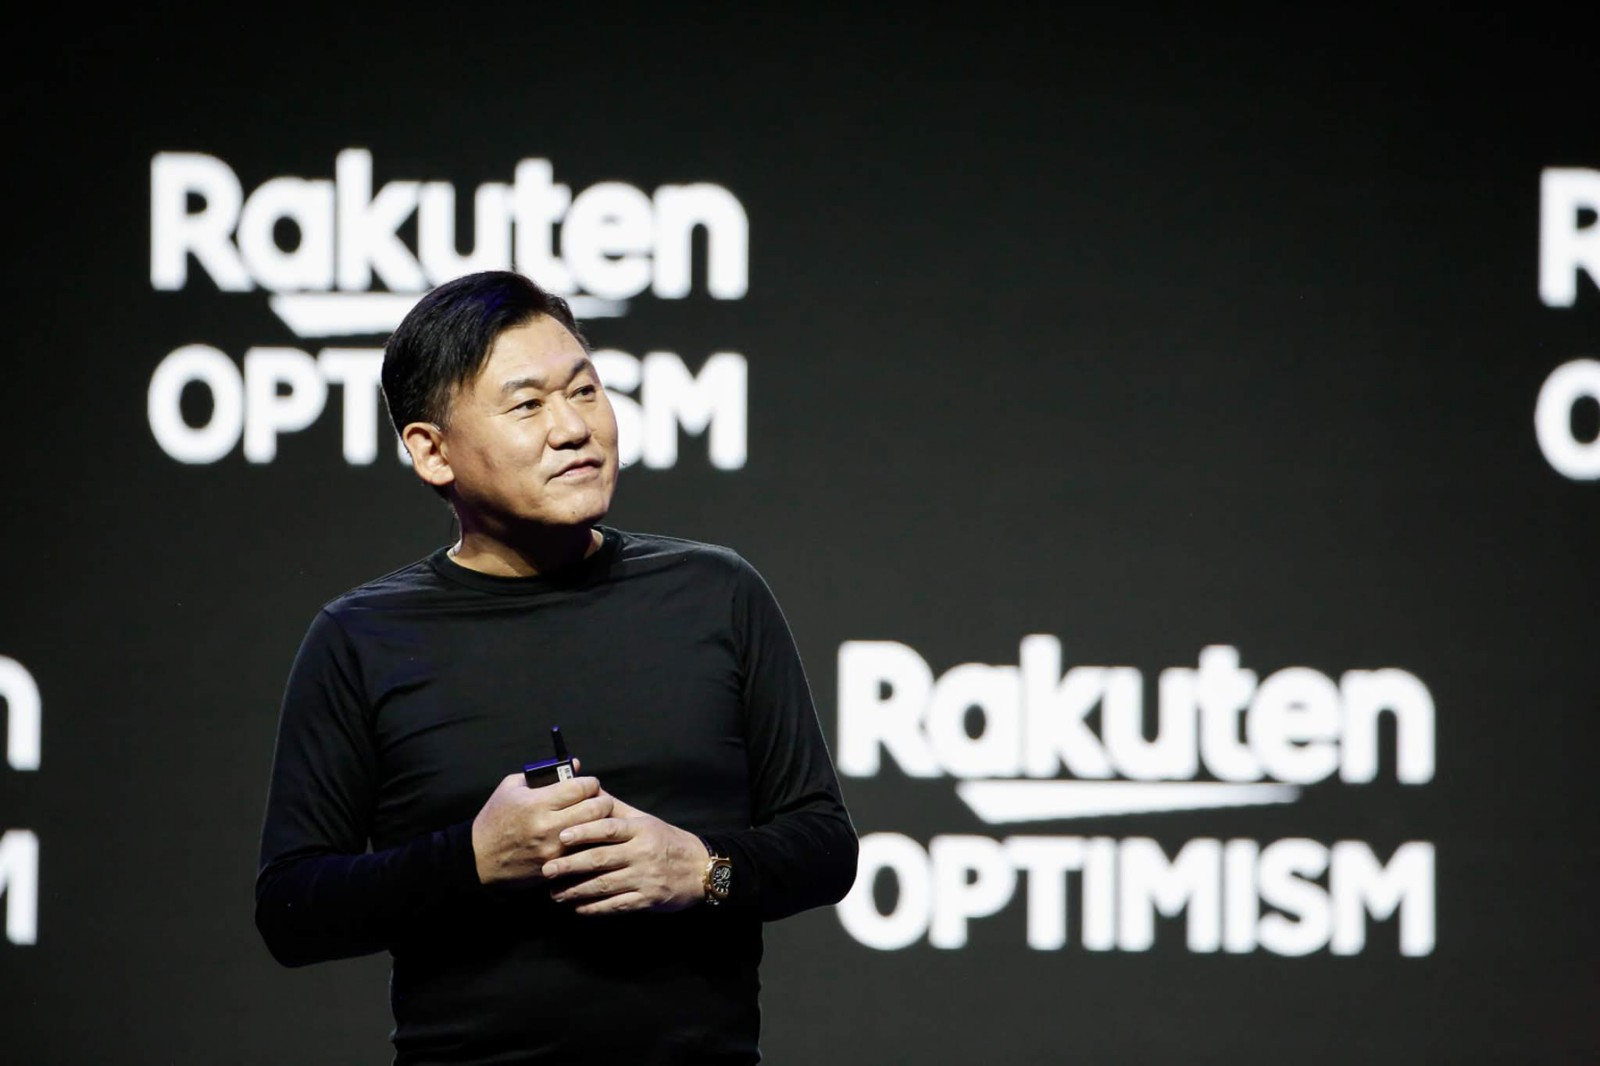 Rakuten is walking together with partners to realize mission-focused projects, from empowering small businesses to helping conquer cancer, explained Mickey Mikitani.